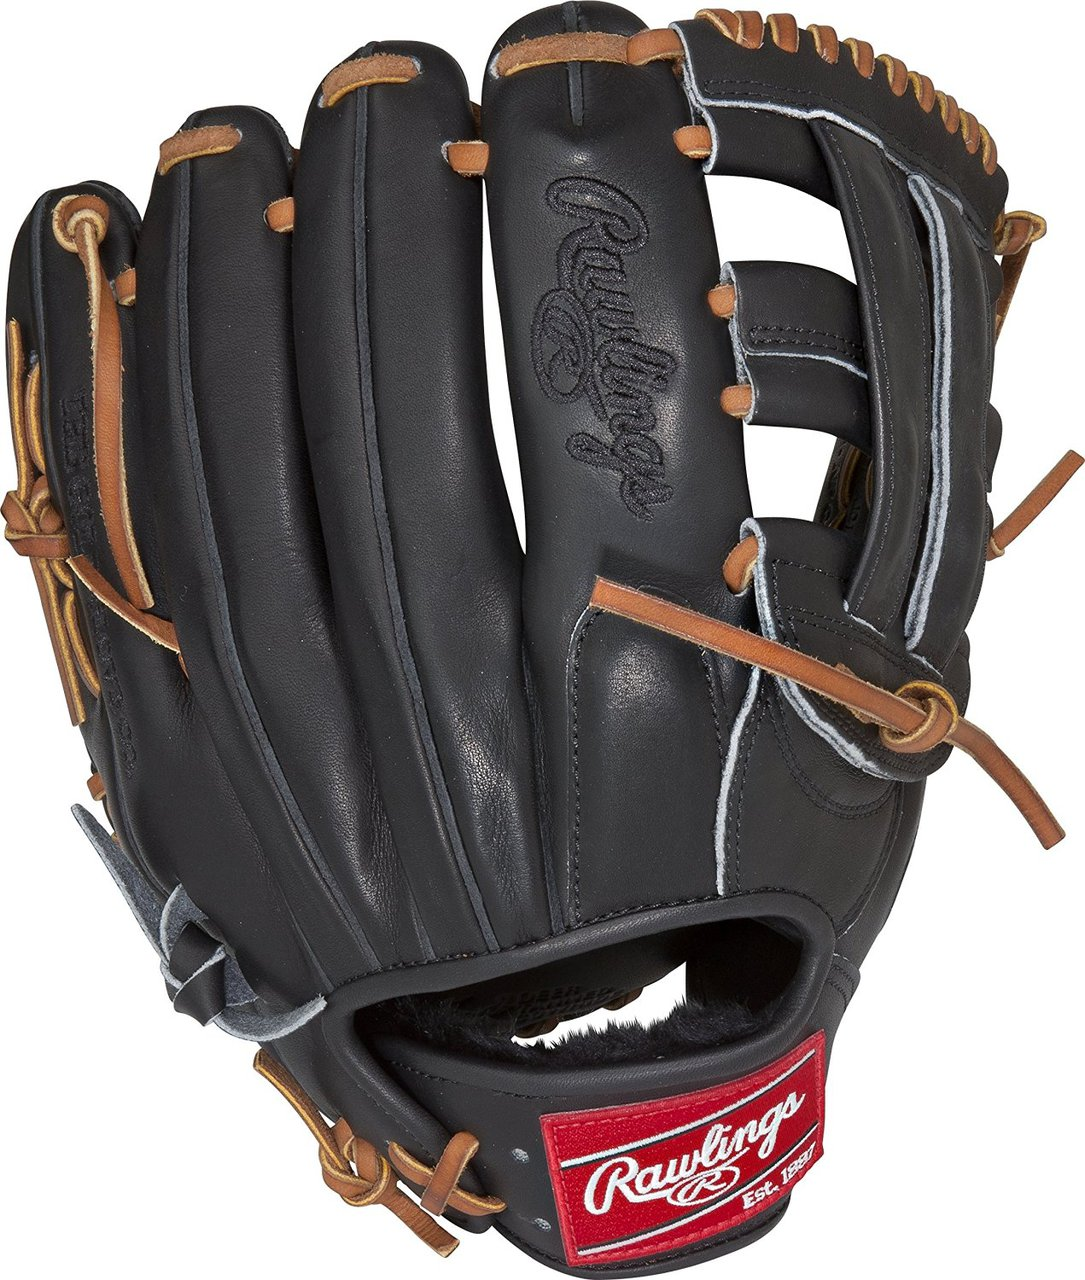 rawlings-heart-of-the-hide-12-baseball-glove-right-hand-throw PRONP6-6JB-RightHandThrow Rawlings 083321164866 Free Shipping 12.00 Inch Pattern Kyle Seager Game Day Model Break-In